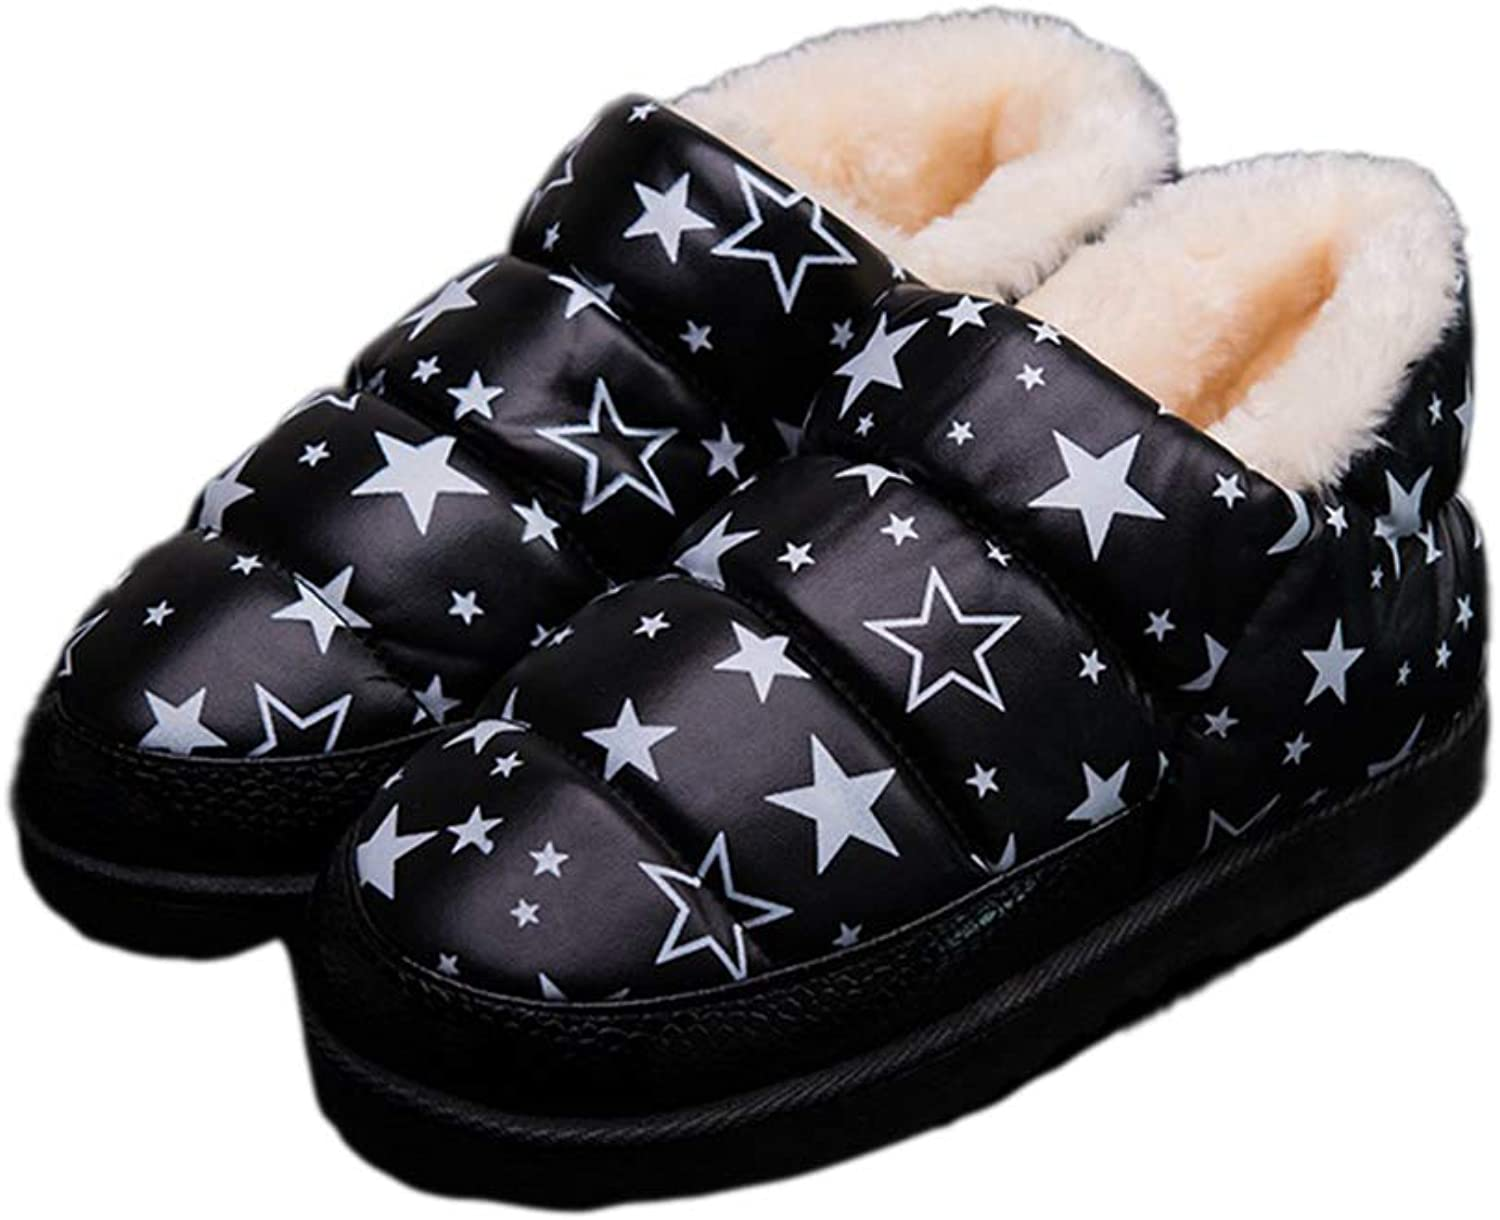 Women Indoor Boots Slippers Waterproof with Fur Platform Winter Female Footwear Cotton Warm Bedroom Ladies shoes